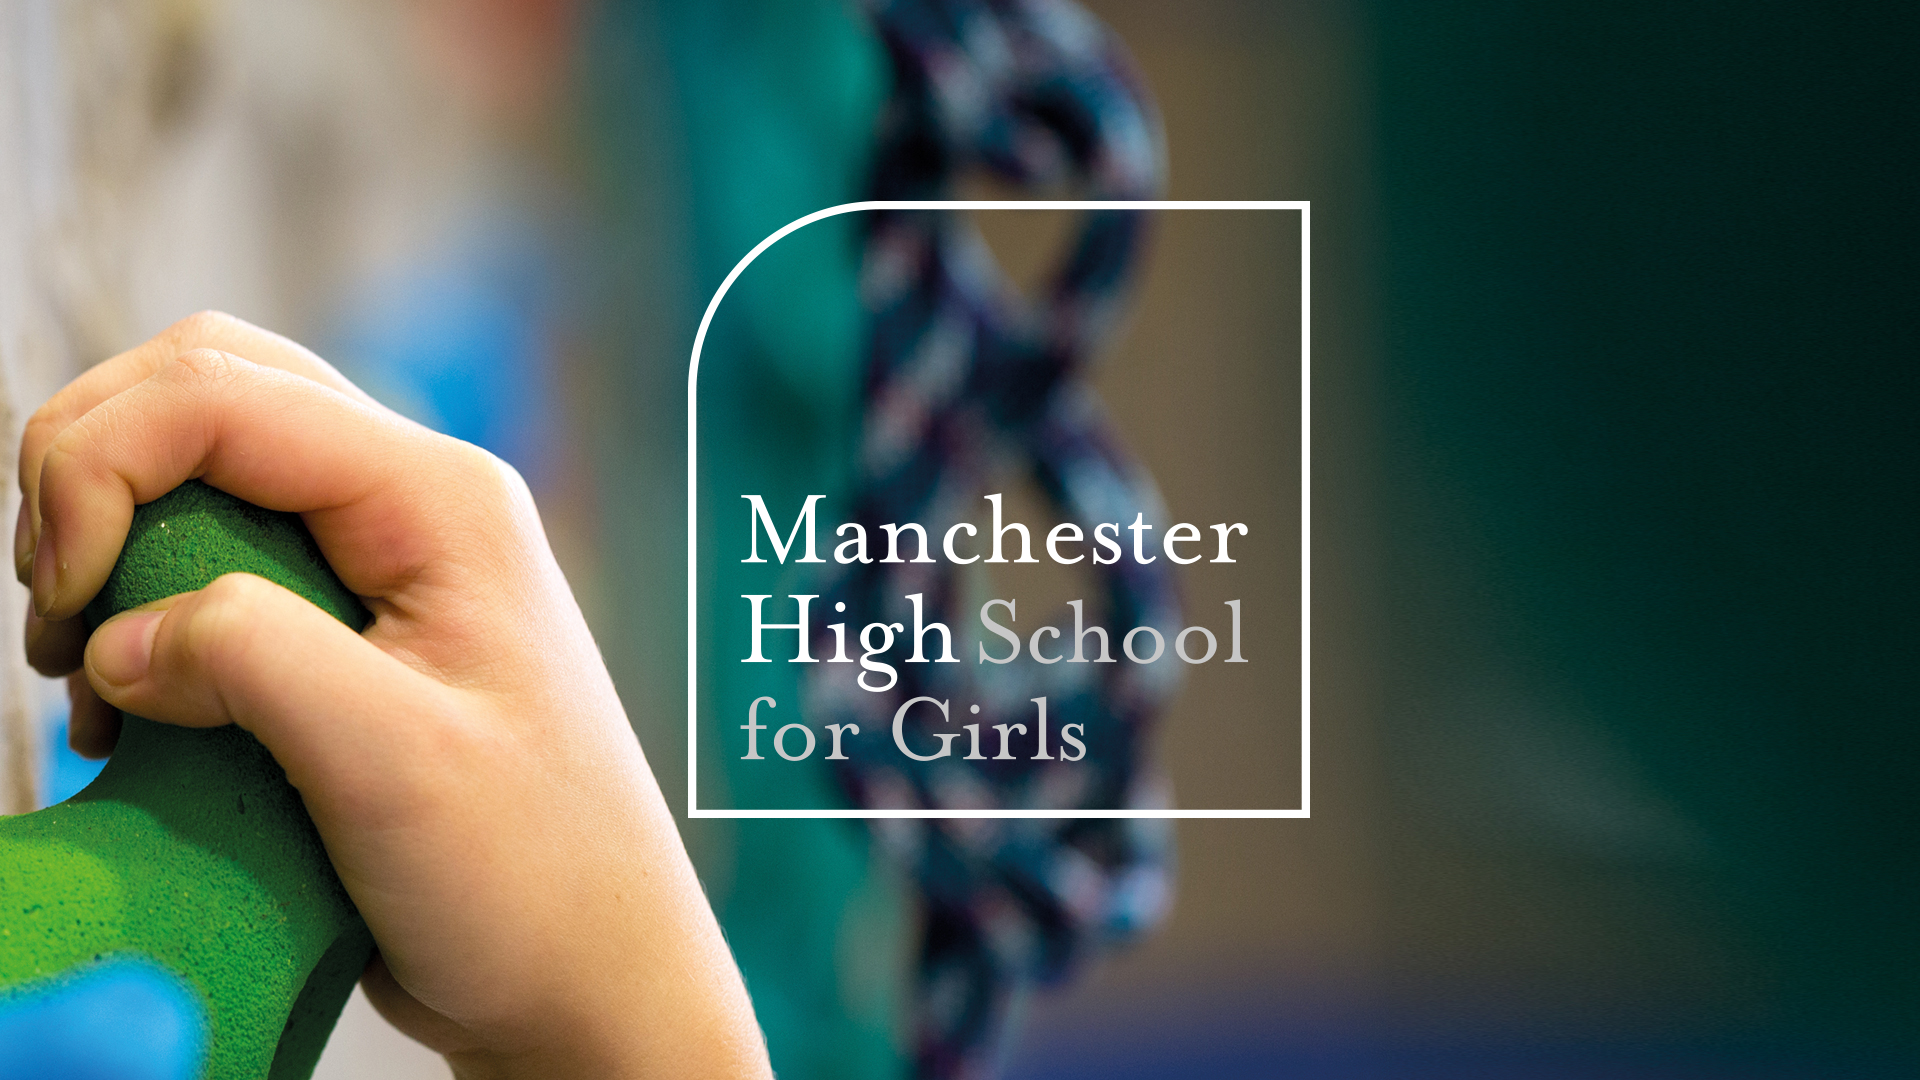 Manchester High School For Girls brand logo rock-climbing photography